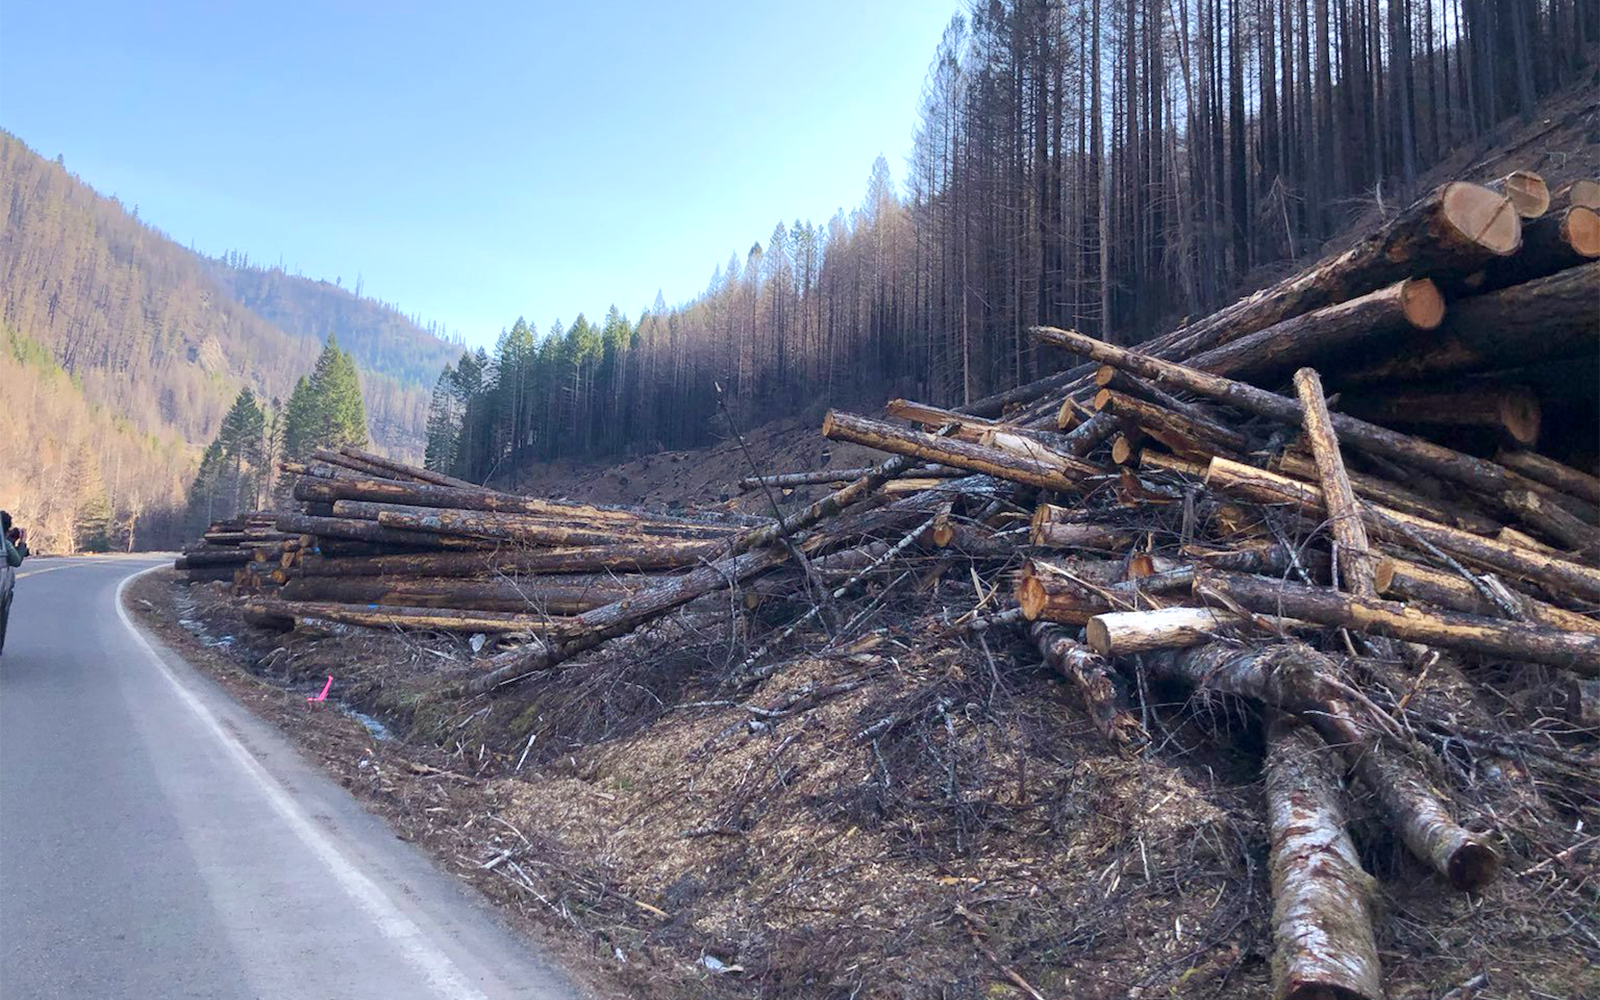 Environmental groups sue over post-wildfire roadside logging plans